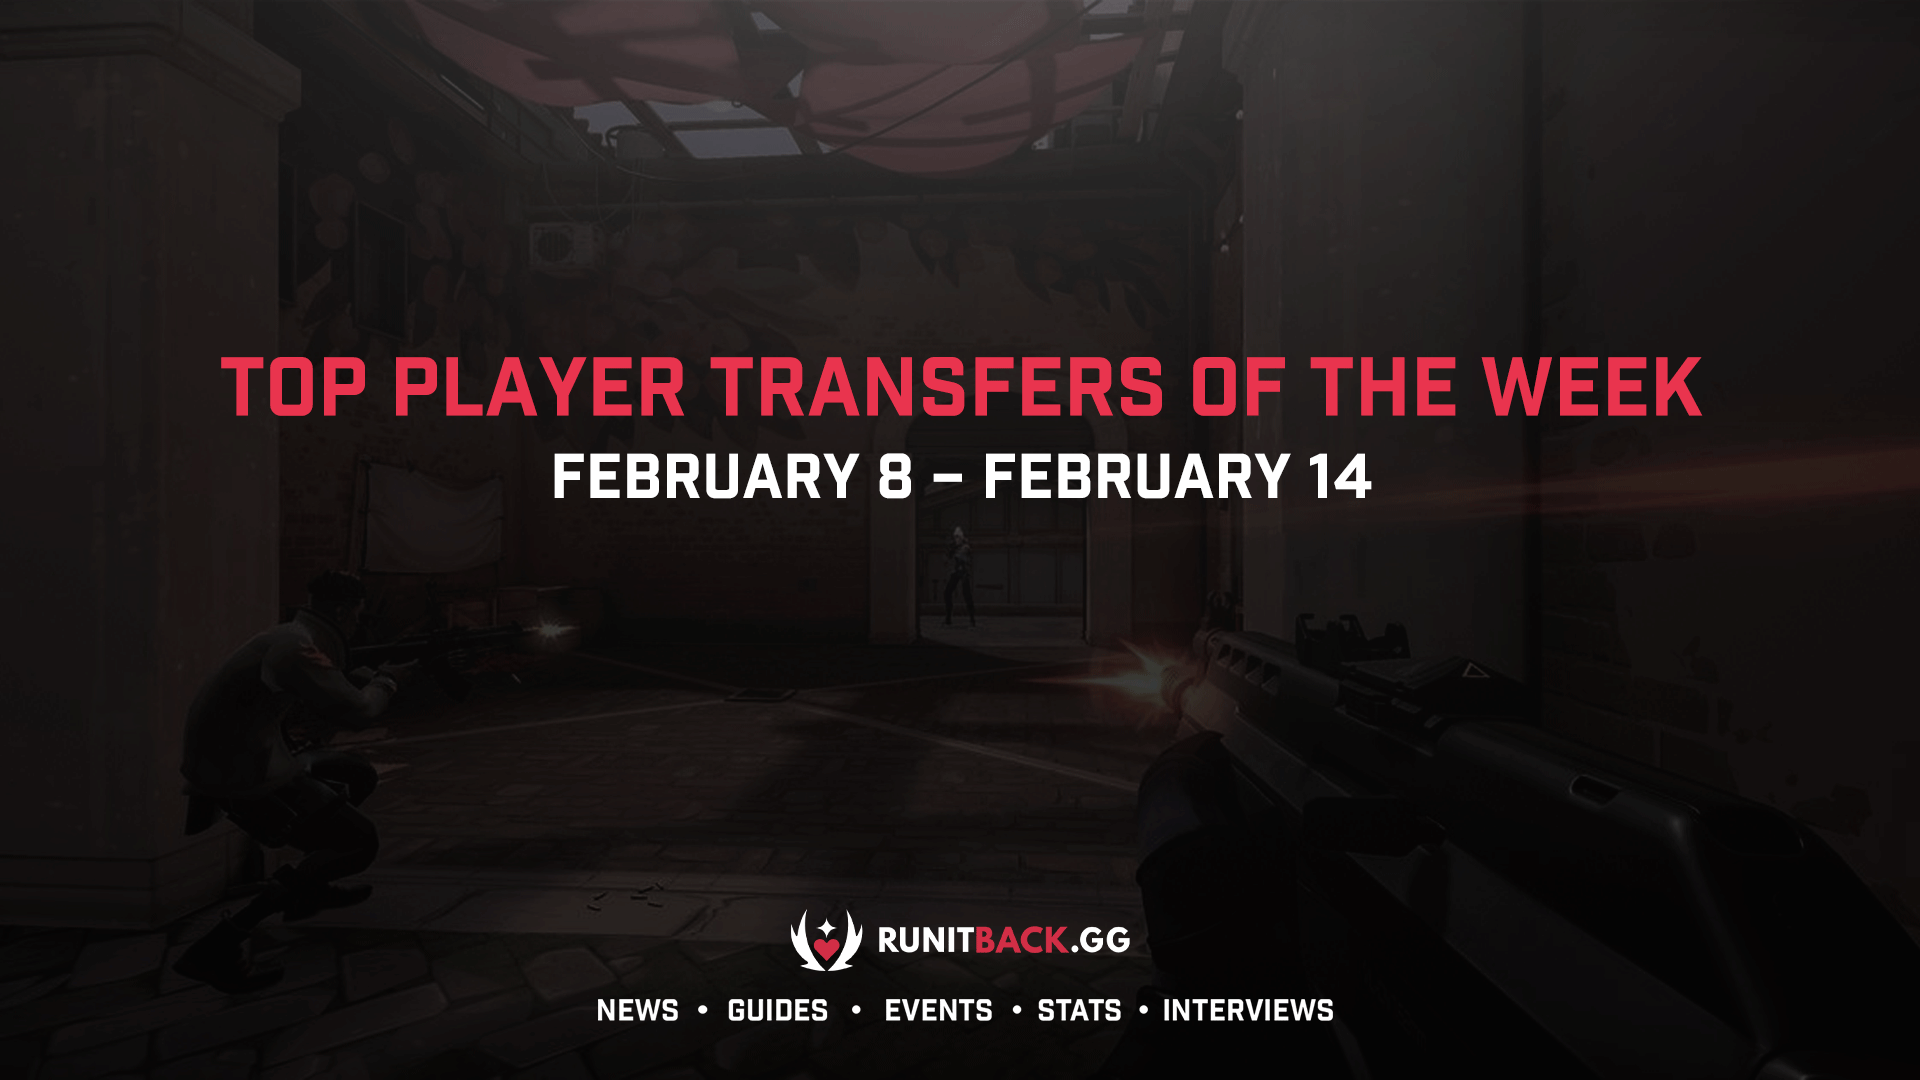 Top Player Transfers of the Week: February 8 – February 14